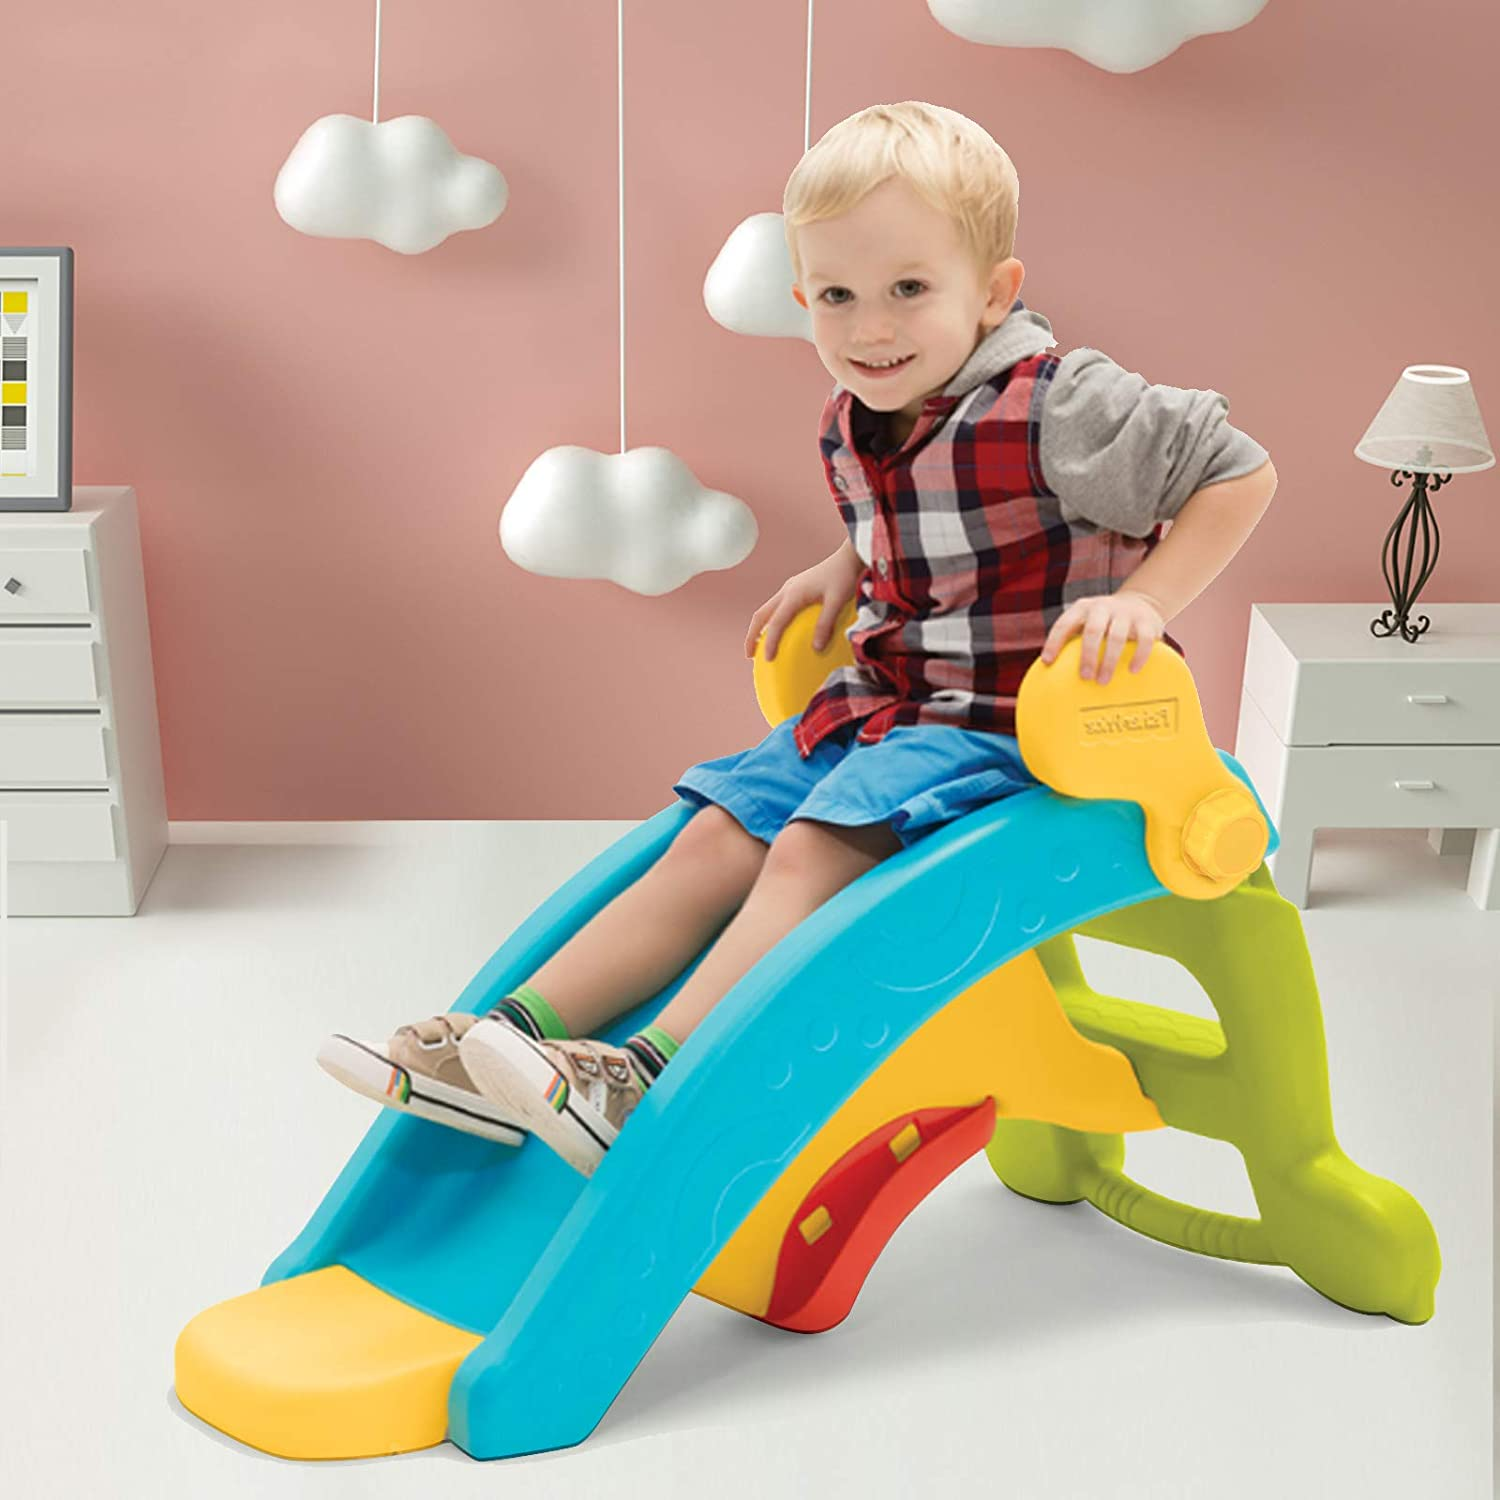 Uenjoy 2 in 1 Toddler Slide & Rocking Toy, Lightweight Sturdy Portable Play Slide Climber for Children